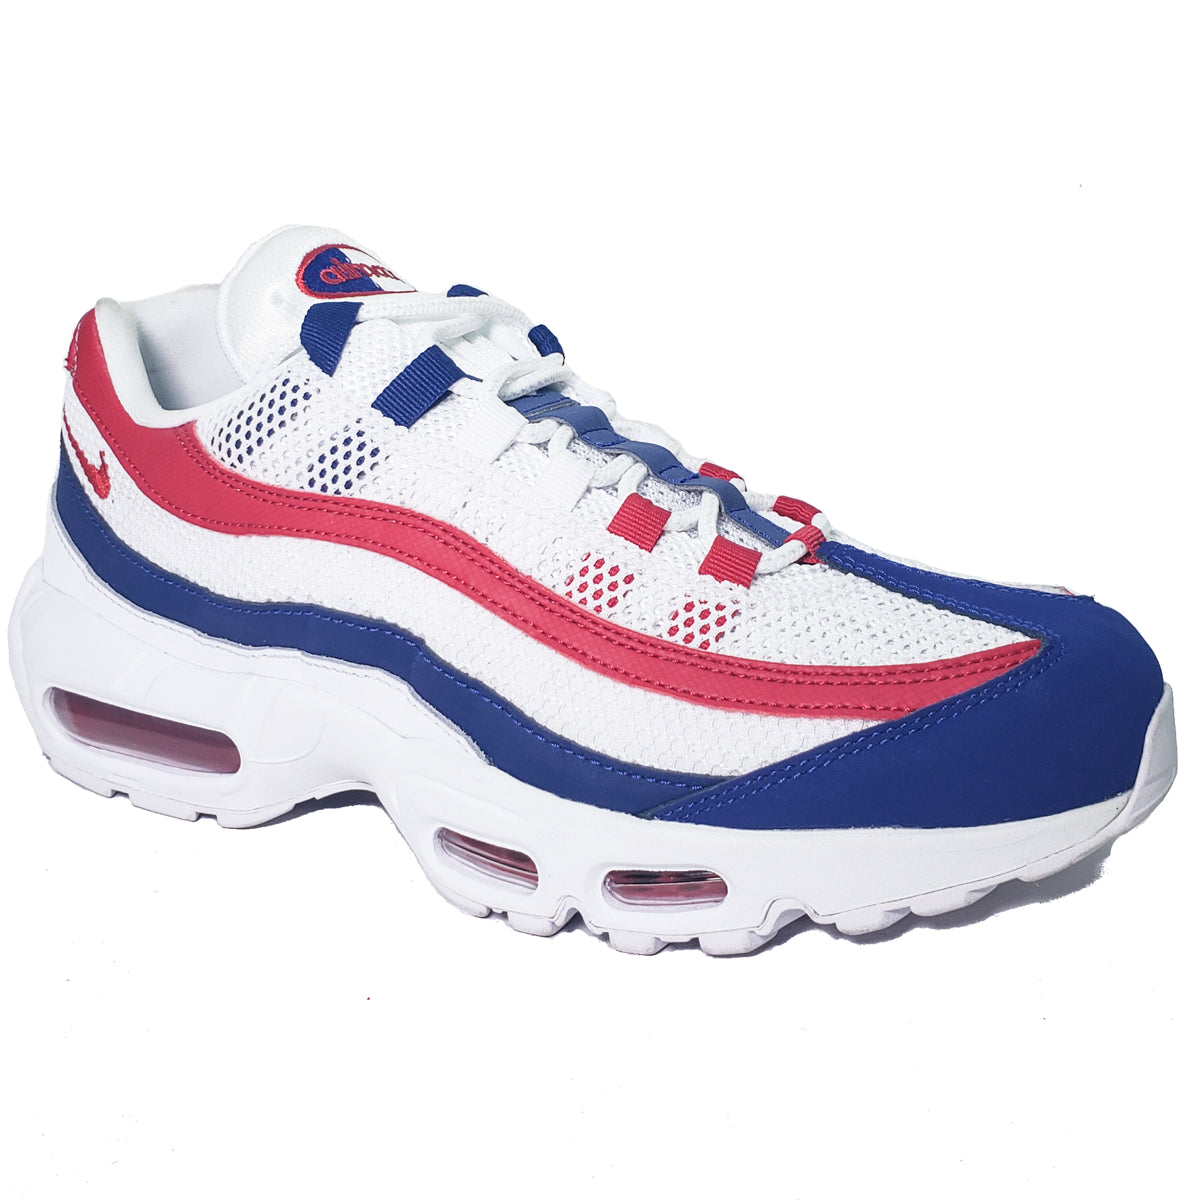 meet a7b52 51a68 Nike Air Max 95 White/Red/Blue